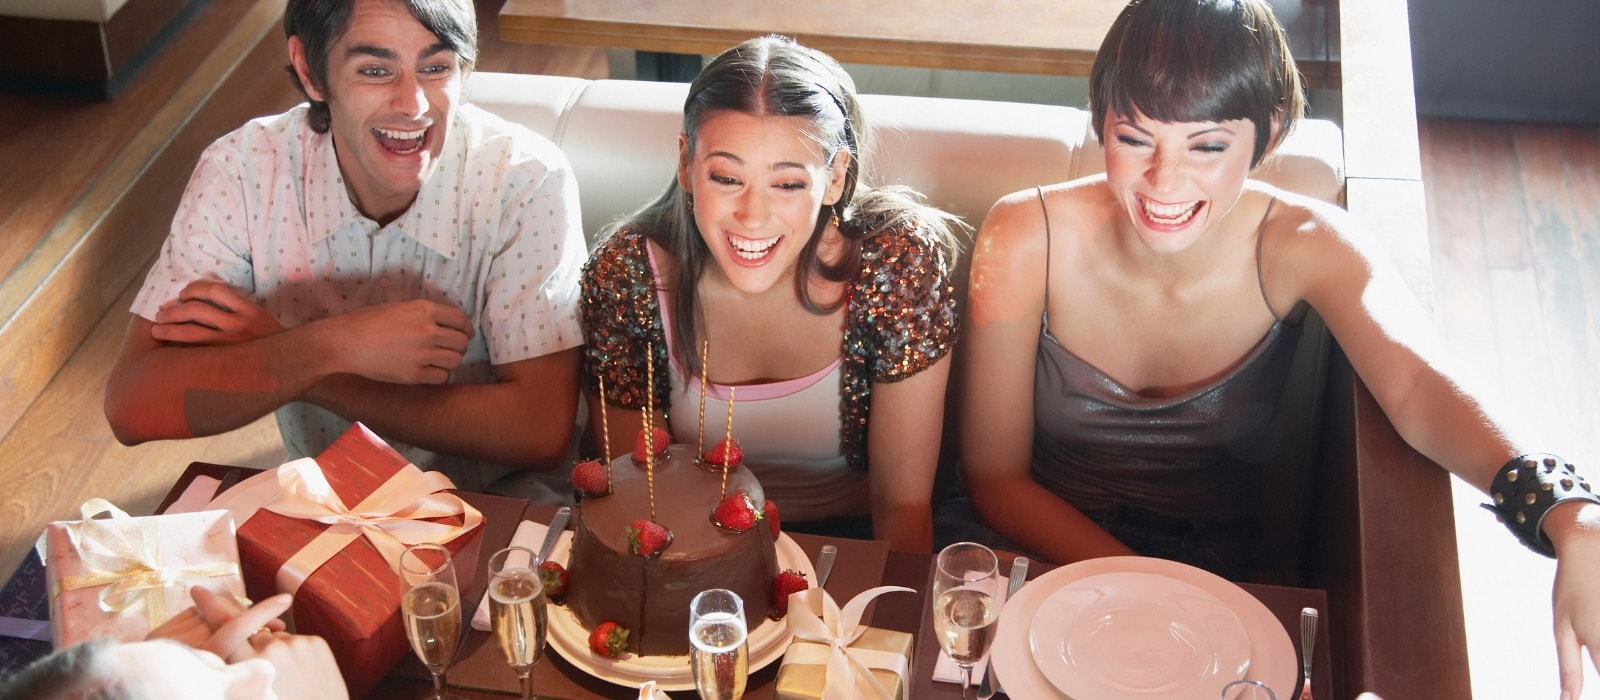 How to Throw a Surprise Party in a Bar or Restaurant